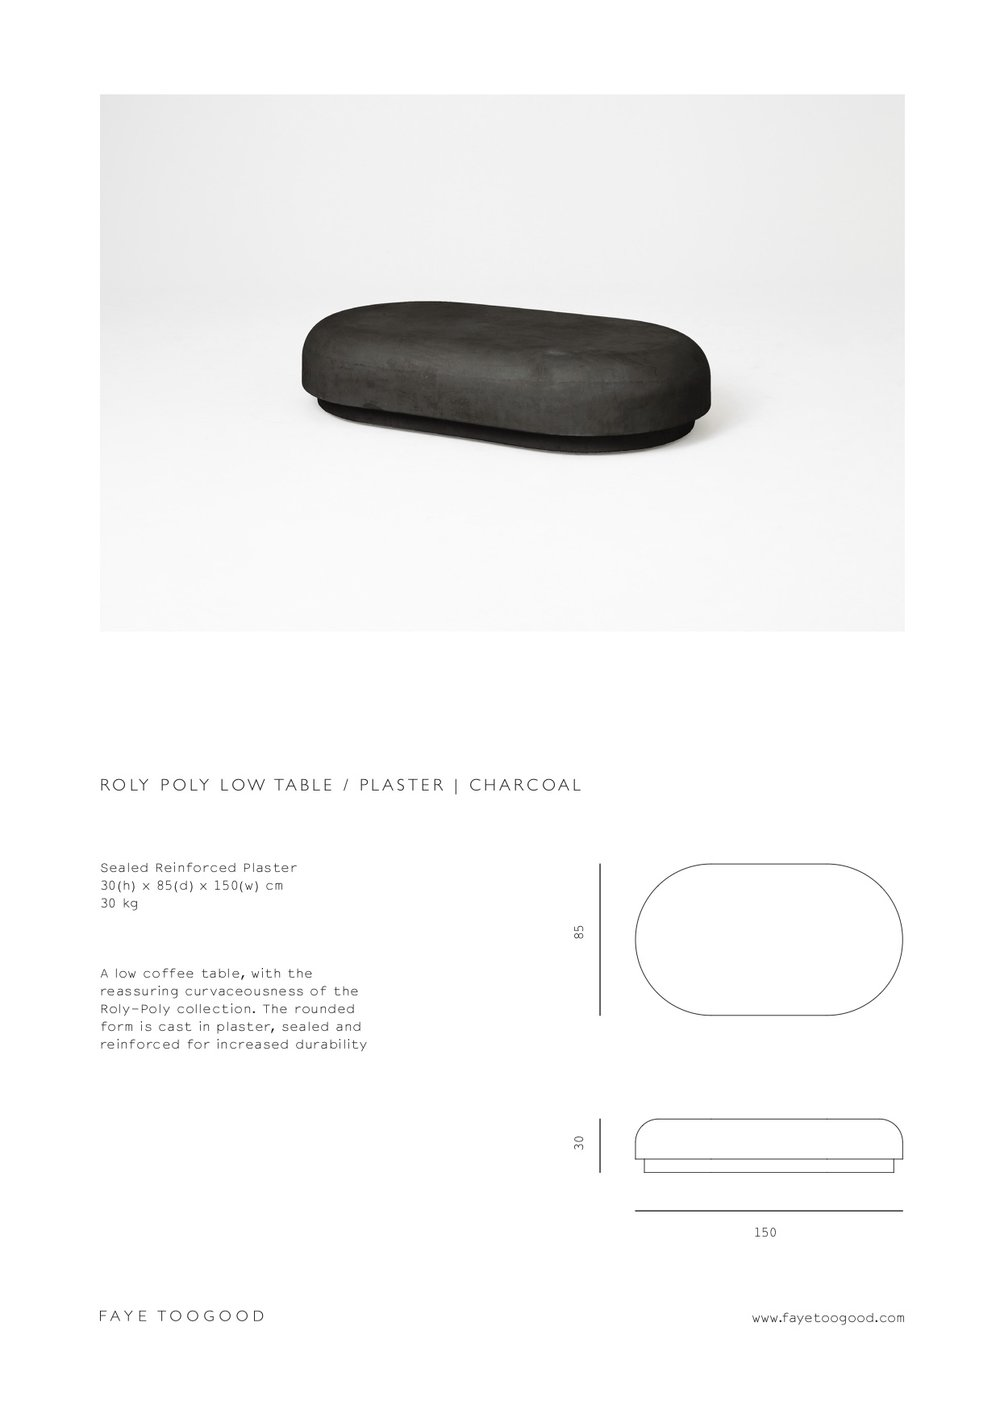 Roly Poly Low Table_Charcoal_Specification_Sheet .jpg